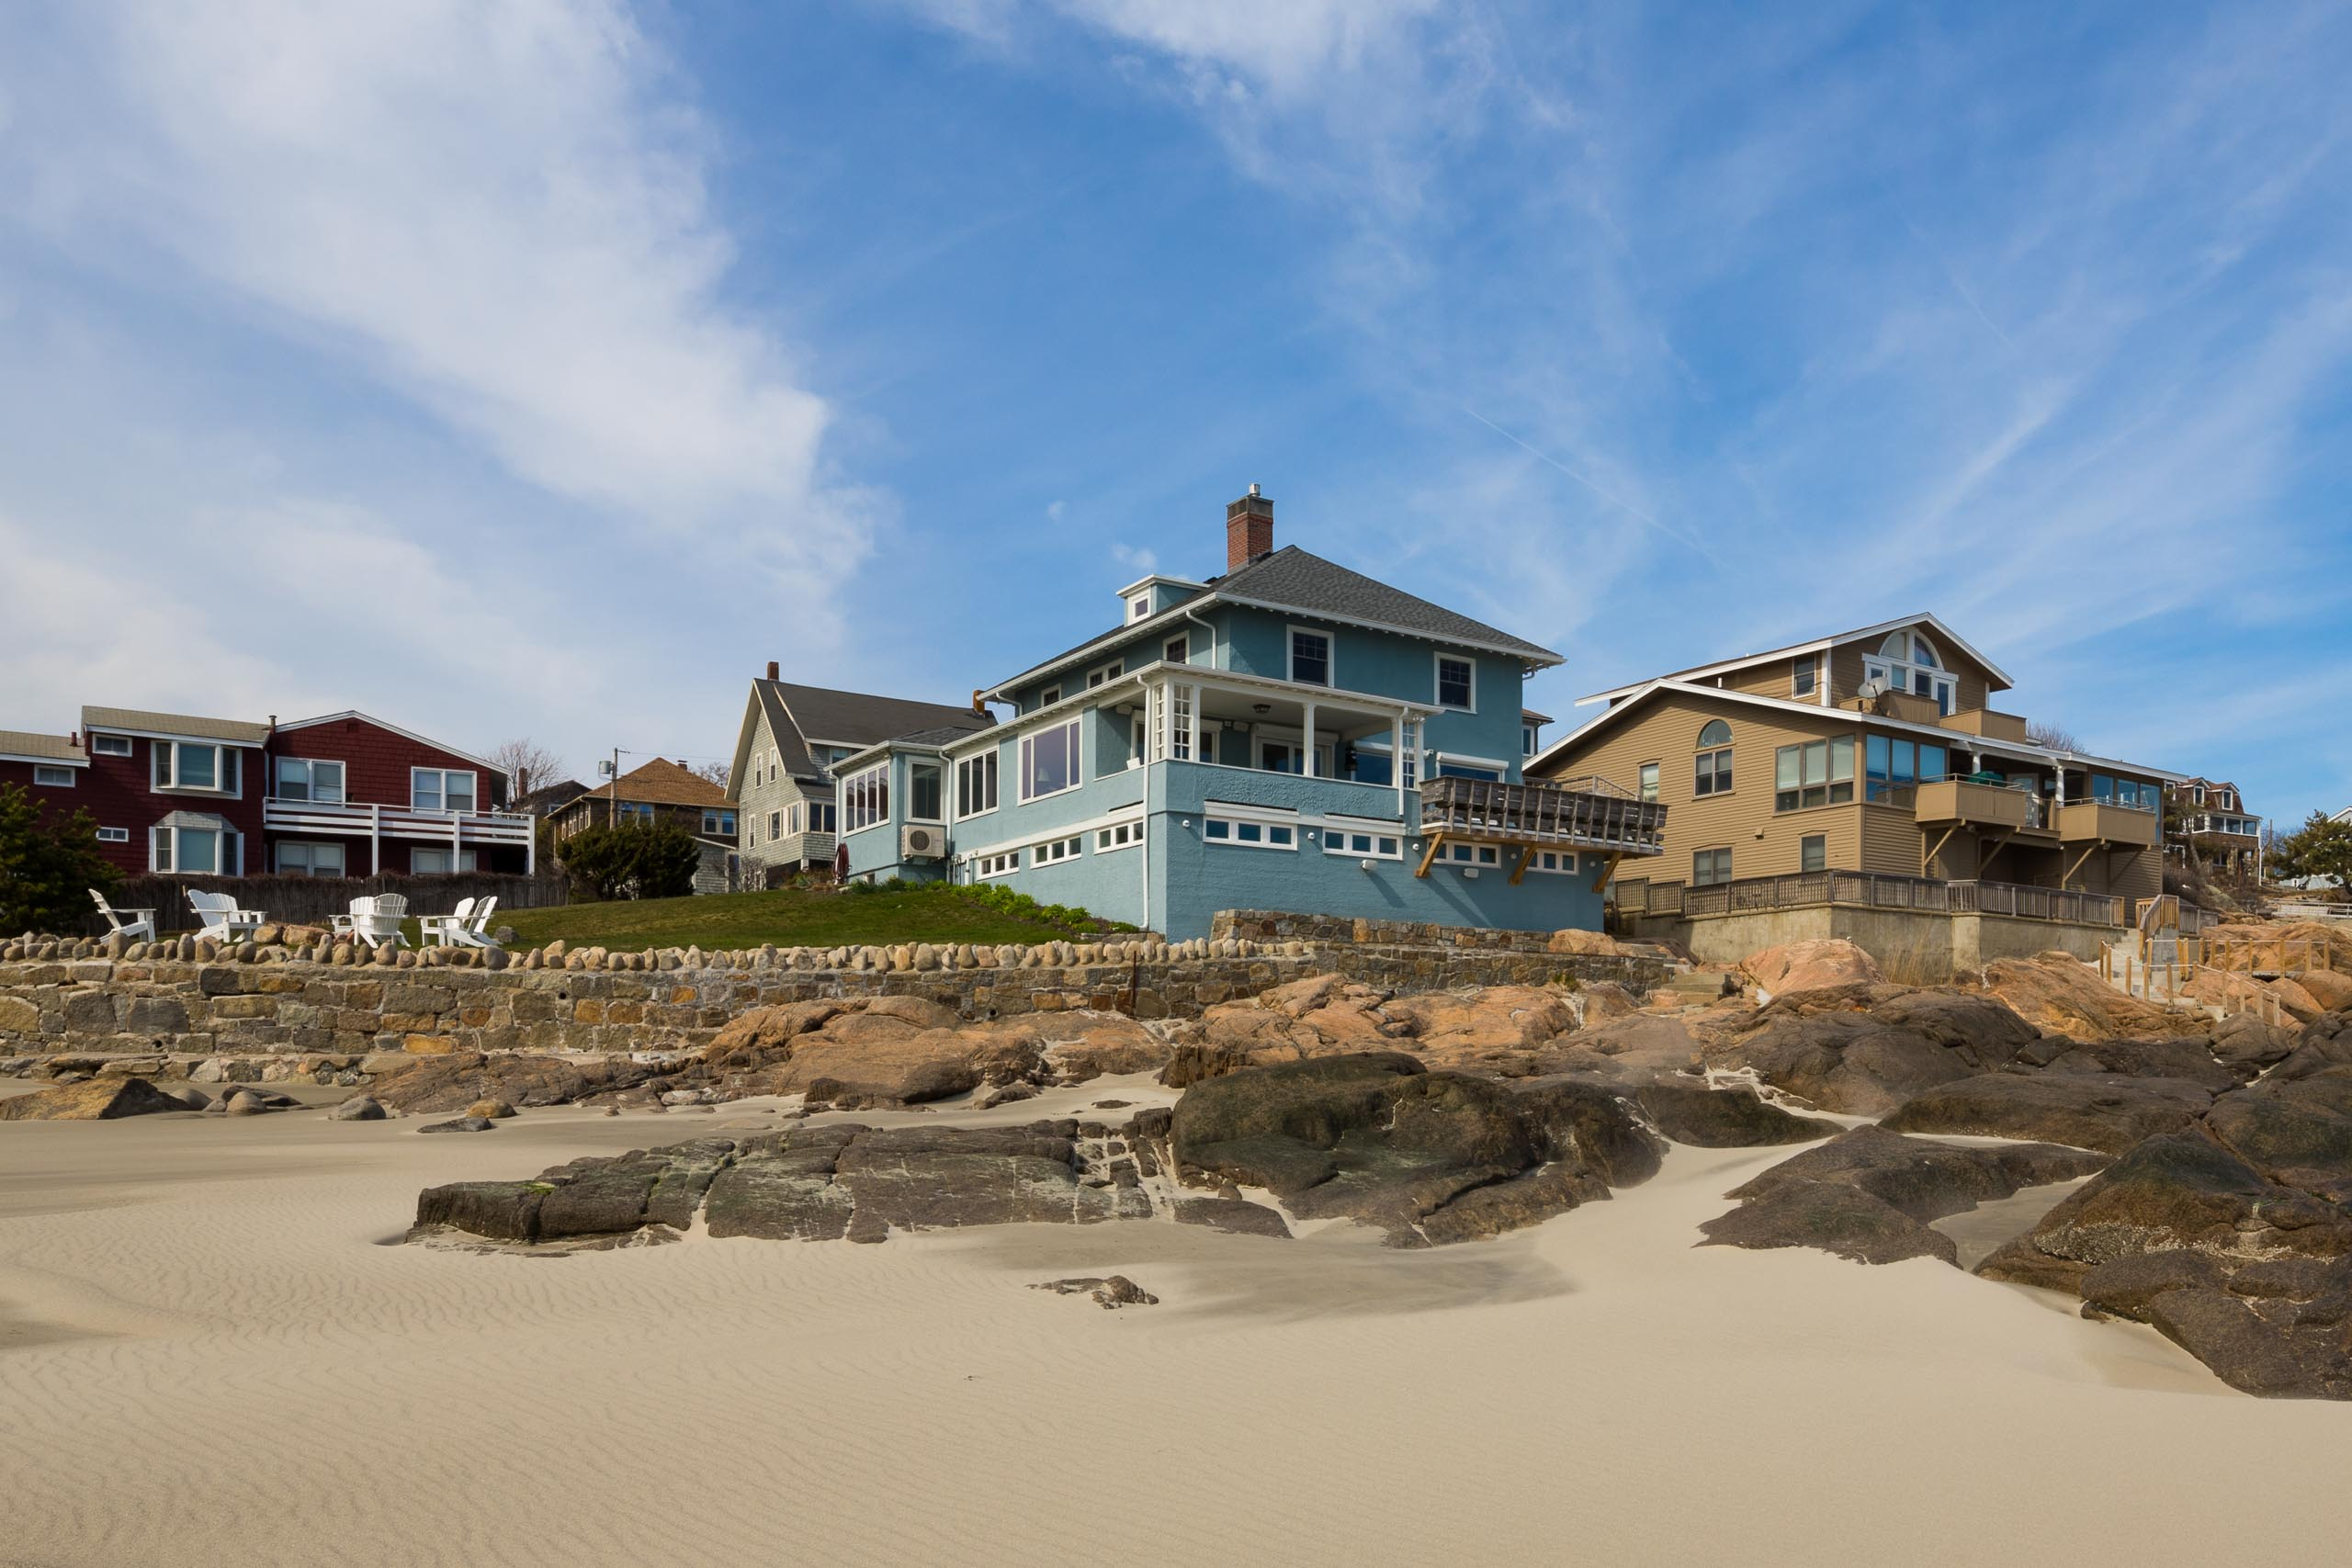 Gloucester Beach House exterior view